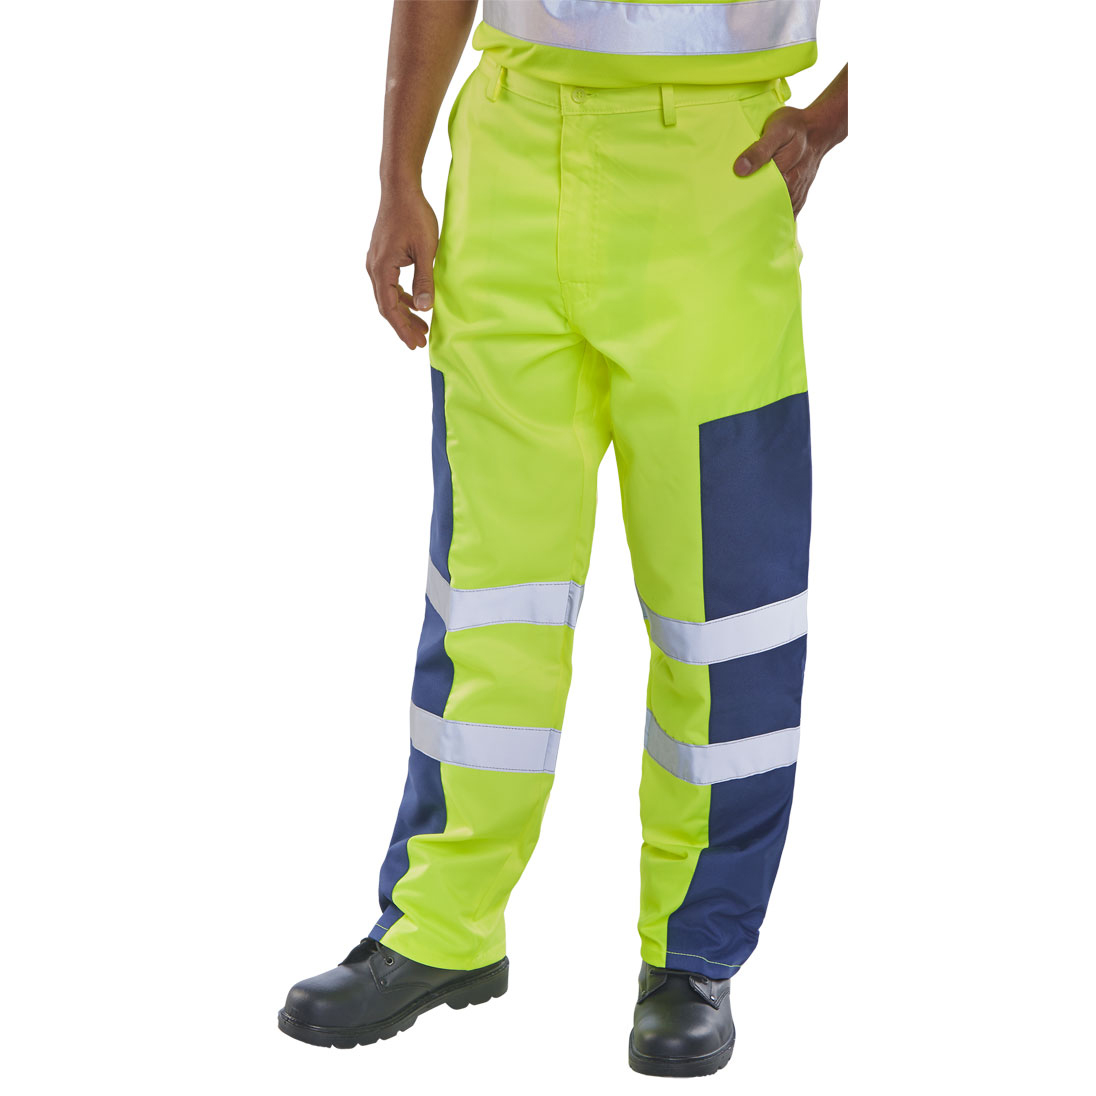 Click Workwear Trousers Hi-Vis Nylon Patch Yellow/Navy Blue 32 Ref PCTSYNNP32 *Up to 3 Day Leadtime*